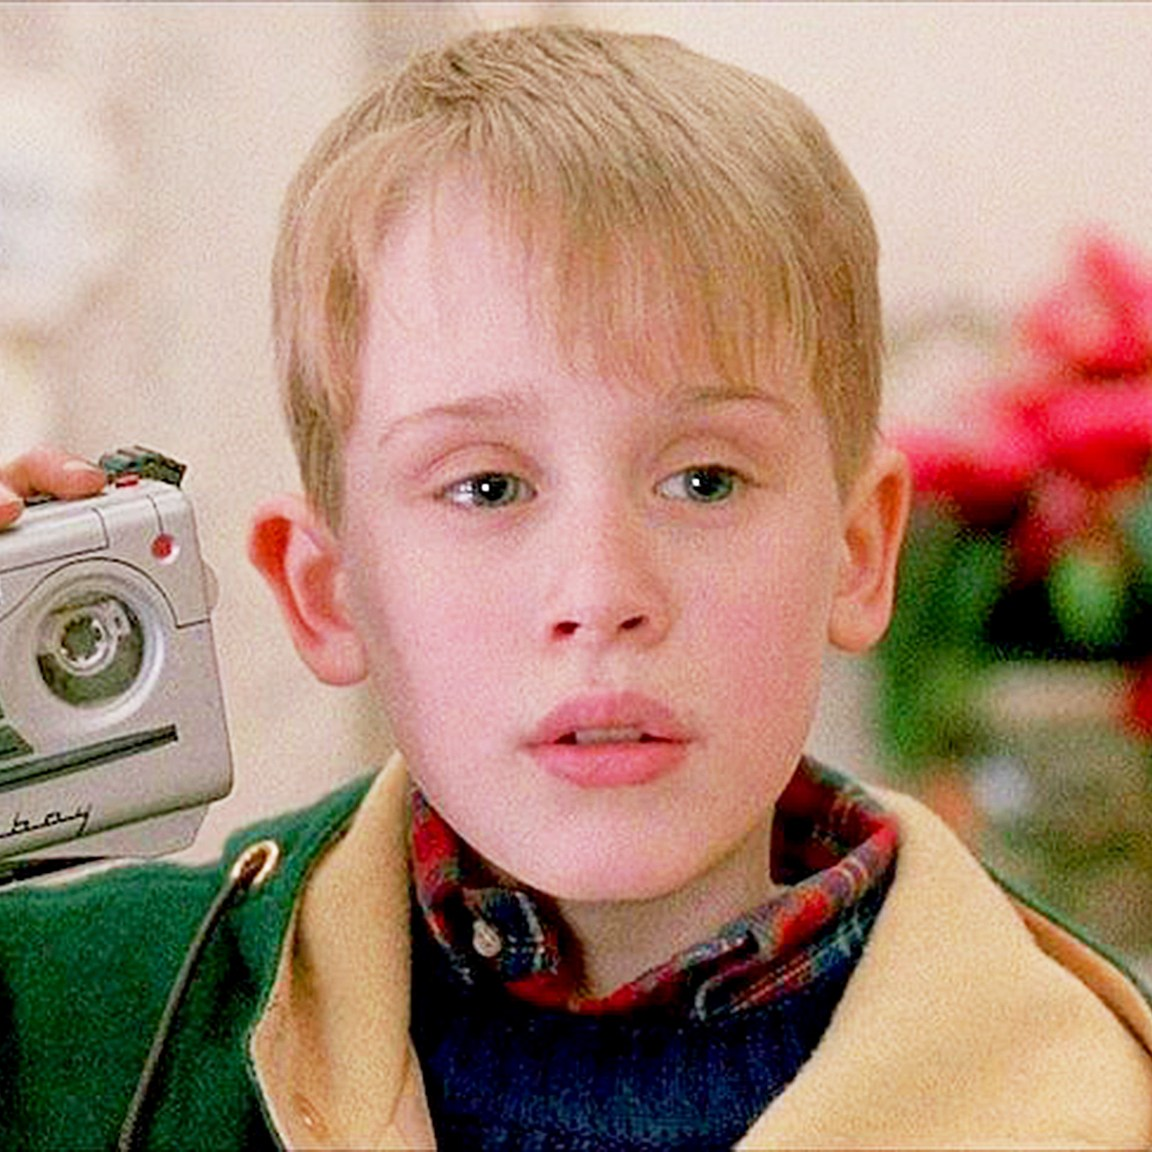 Macaulay Culkin as Kevin McCallister in 'Home Alone 2'